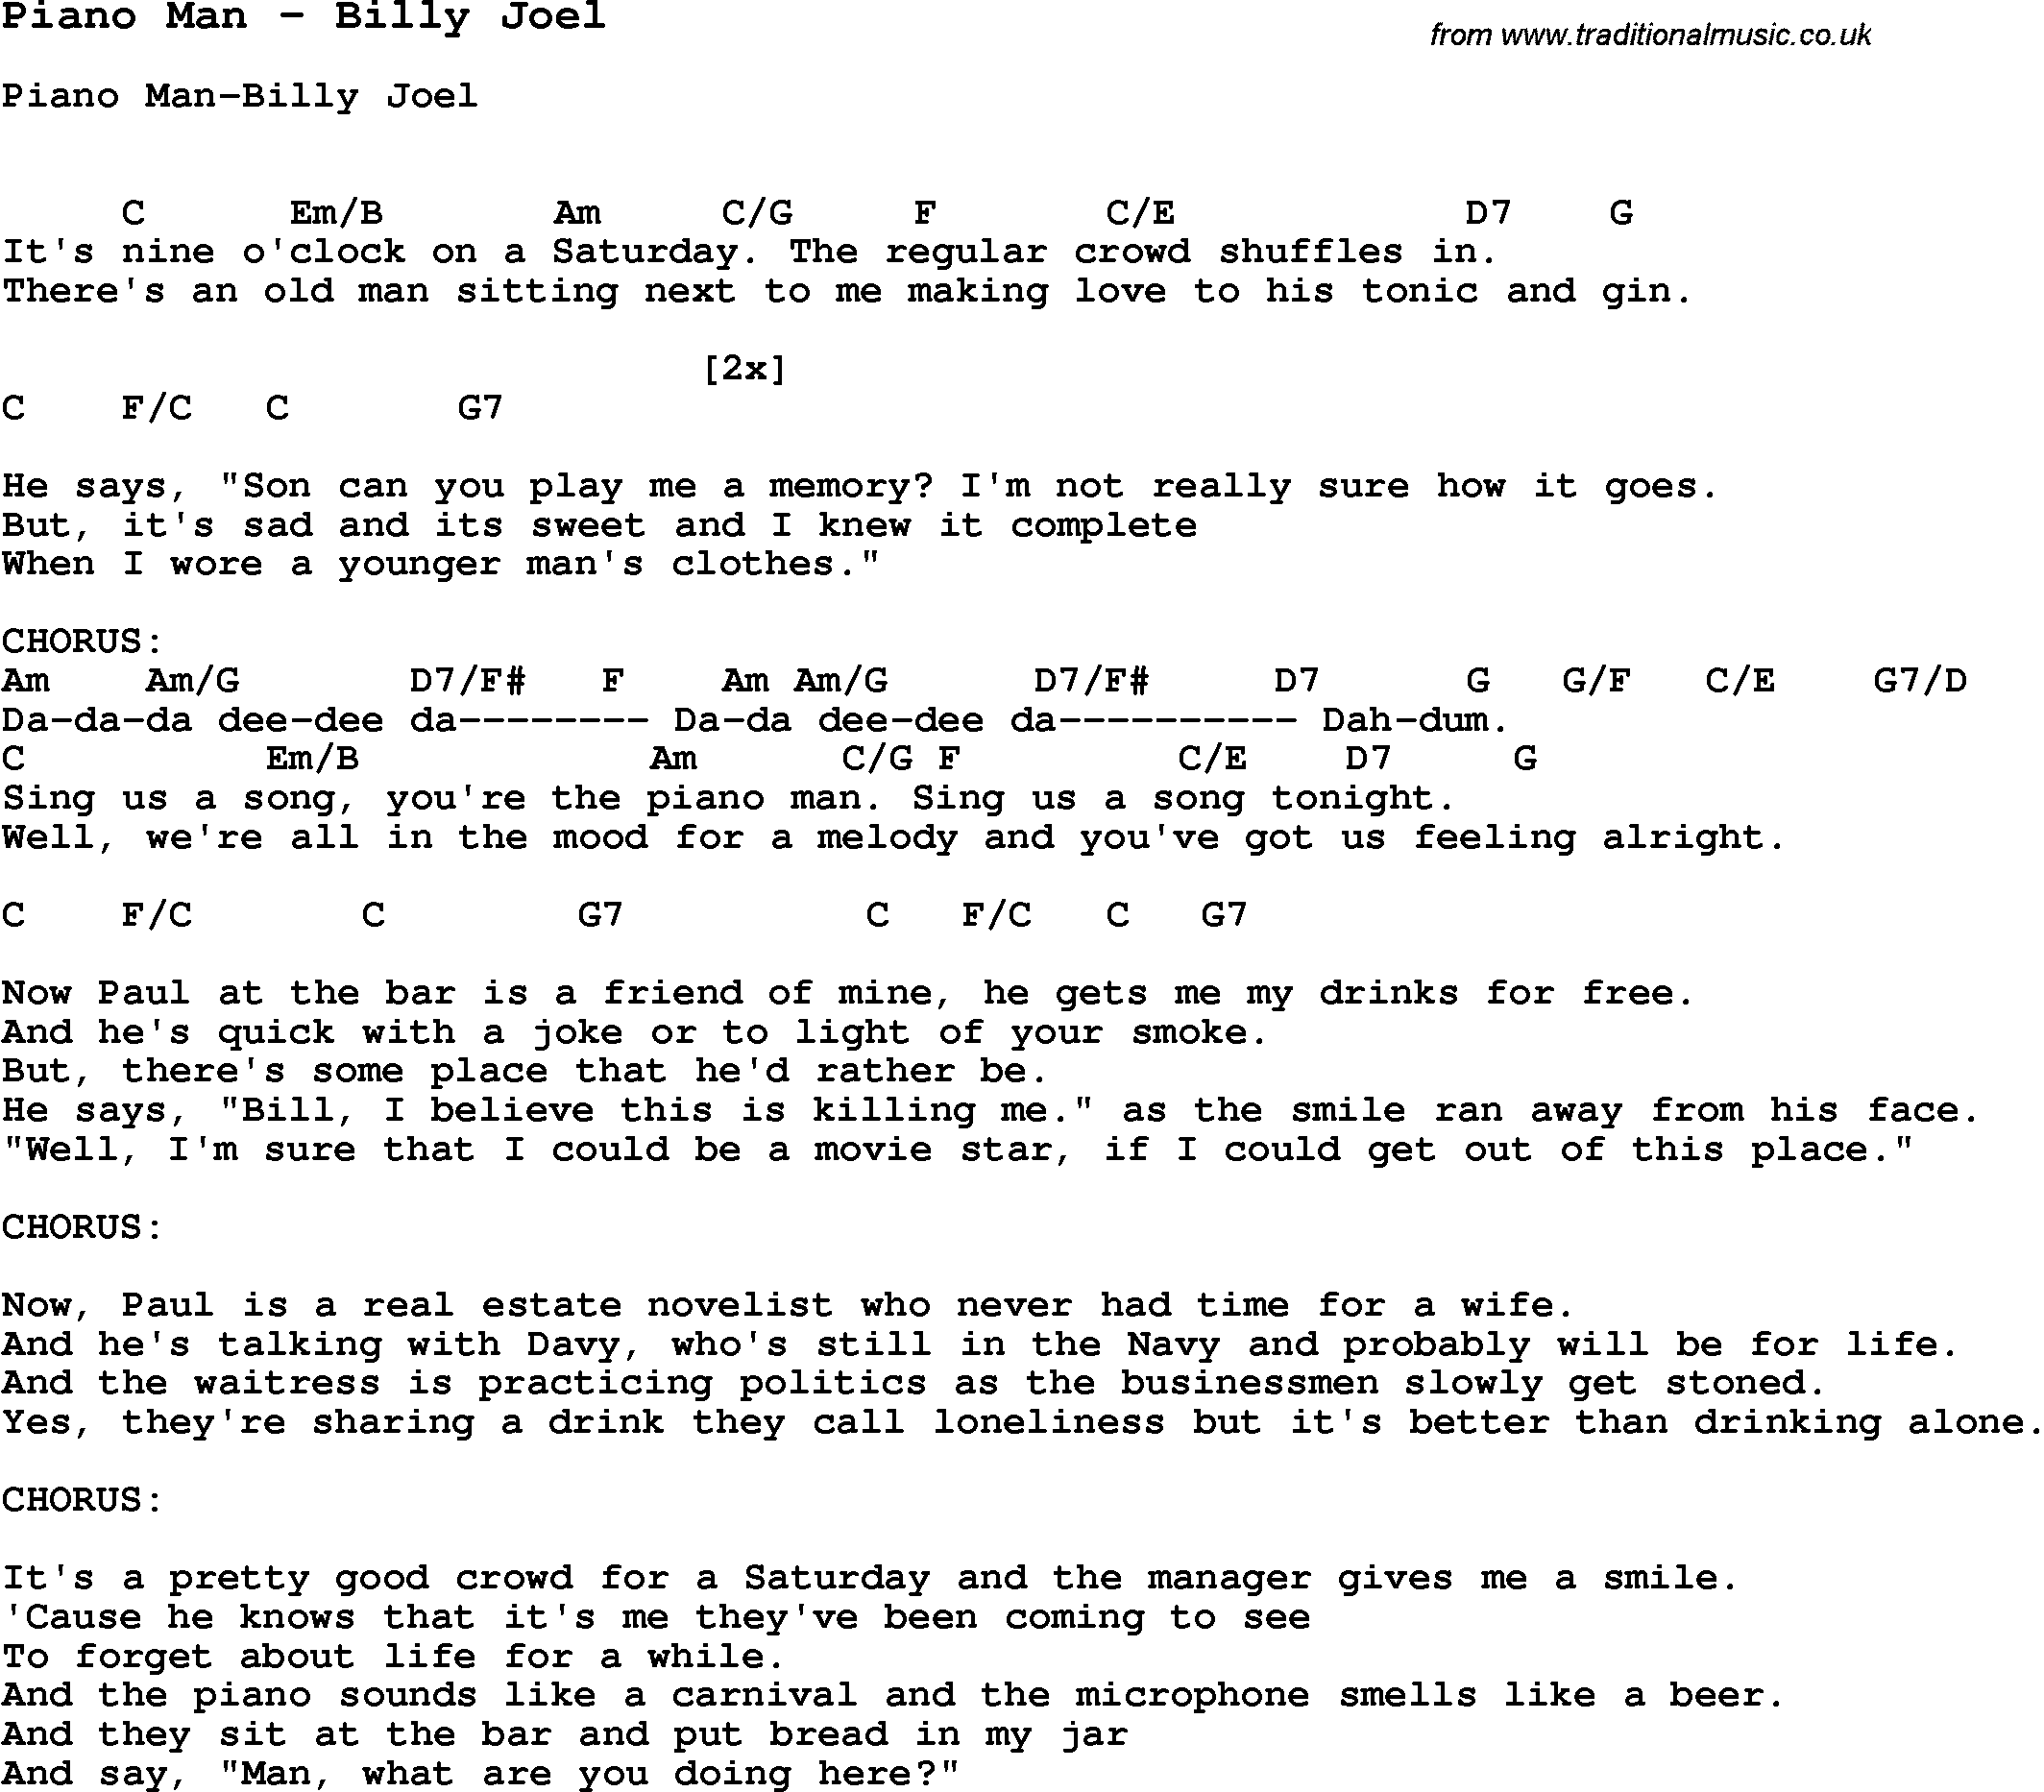 Song Piano Man By Billy Joel, Song Lyric For Vocal